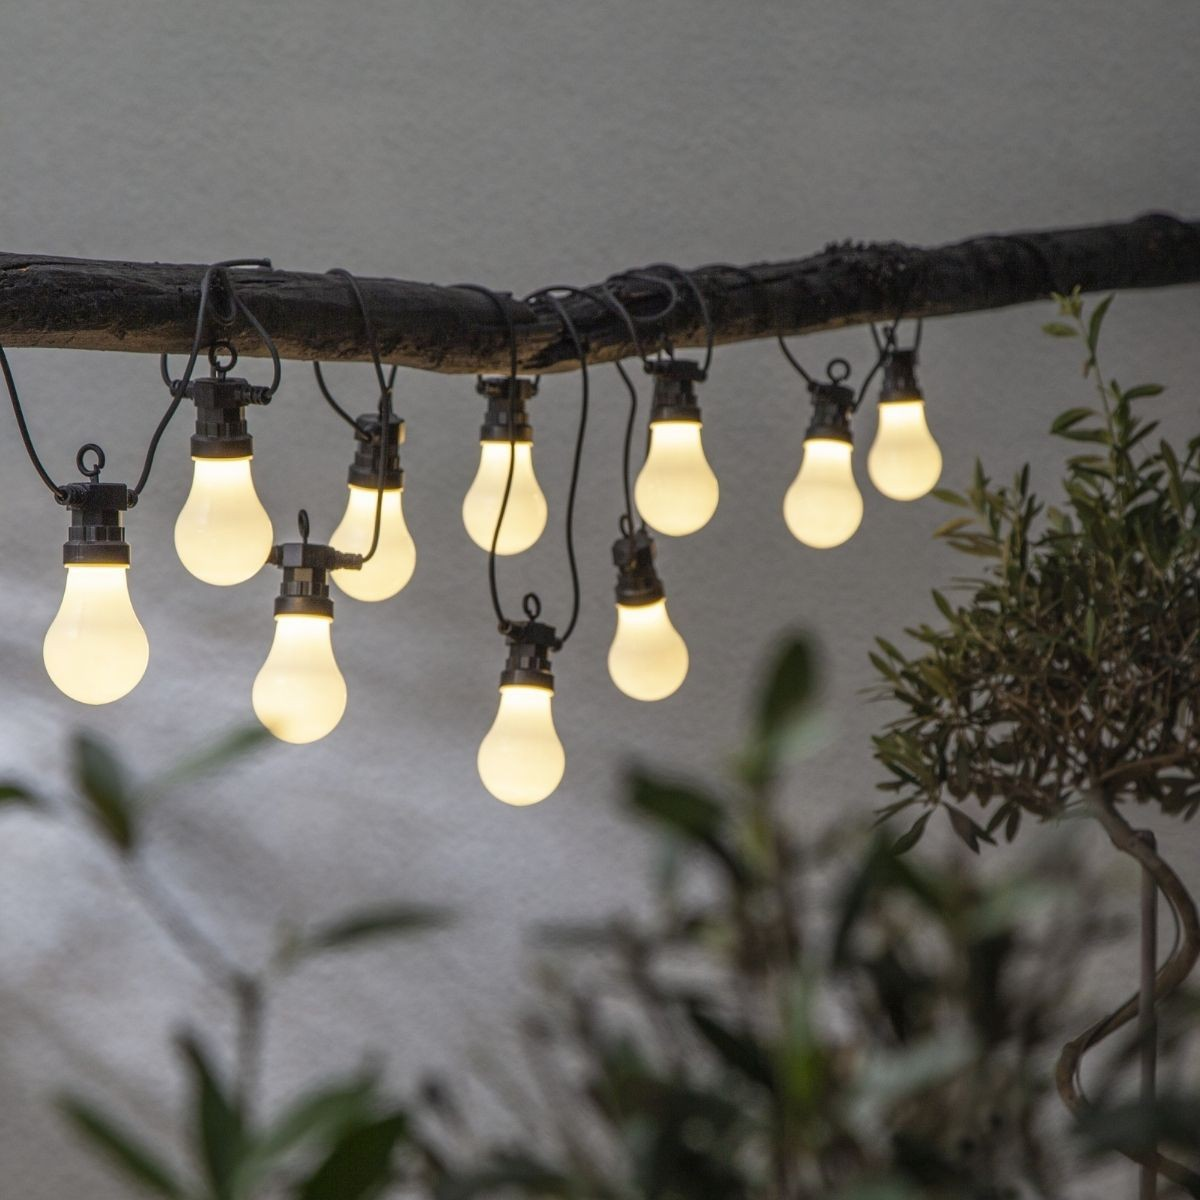 LED Lichterkette CIRCUS - 10 opal weisse Birnen - warmweisse LED - 4-05m - inkl- Trafo - outdoor